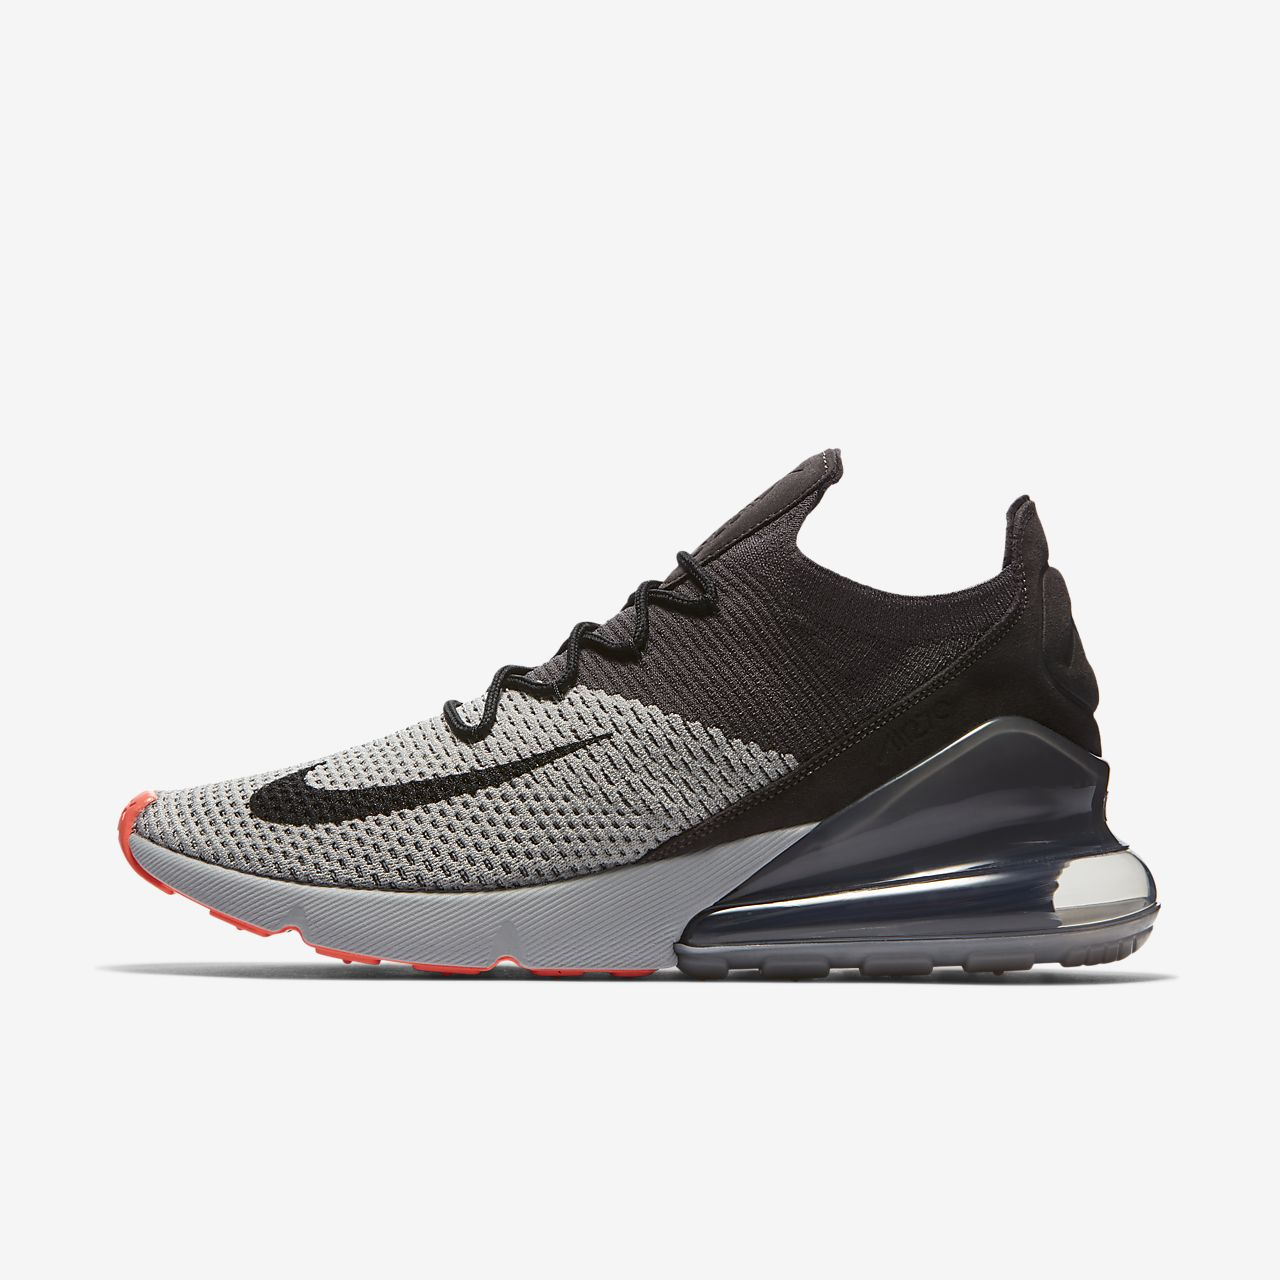 5785592abdb1 Nike Air Max 270 Flyknit Men s Shoe. Nike.com GB